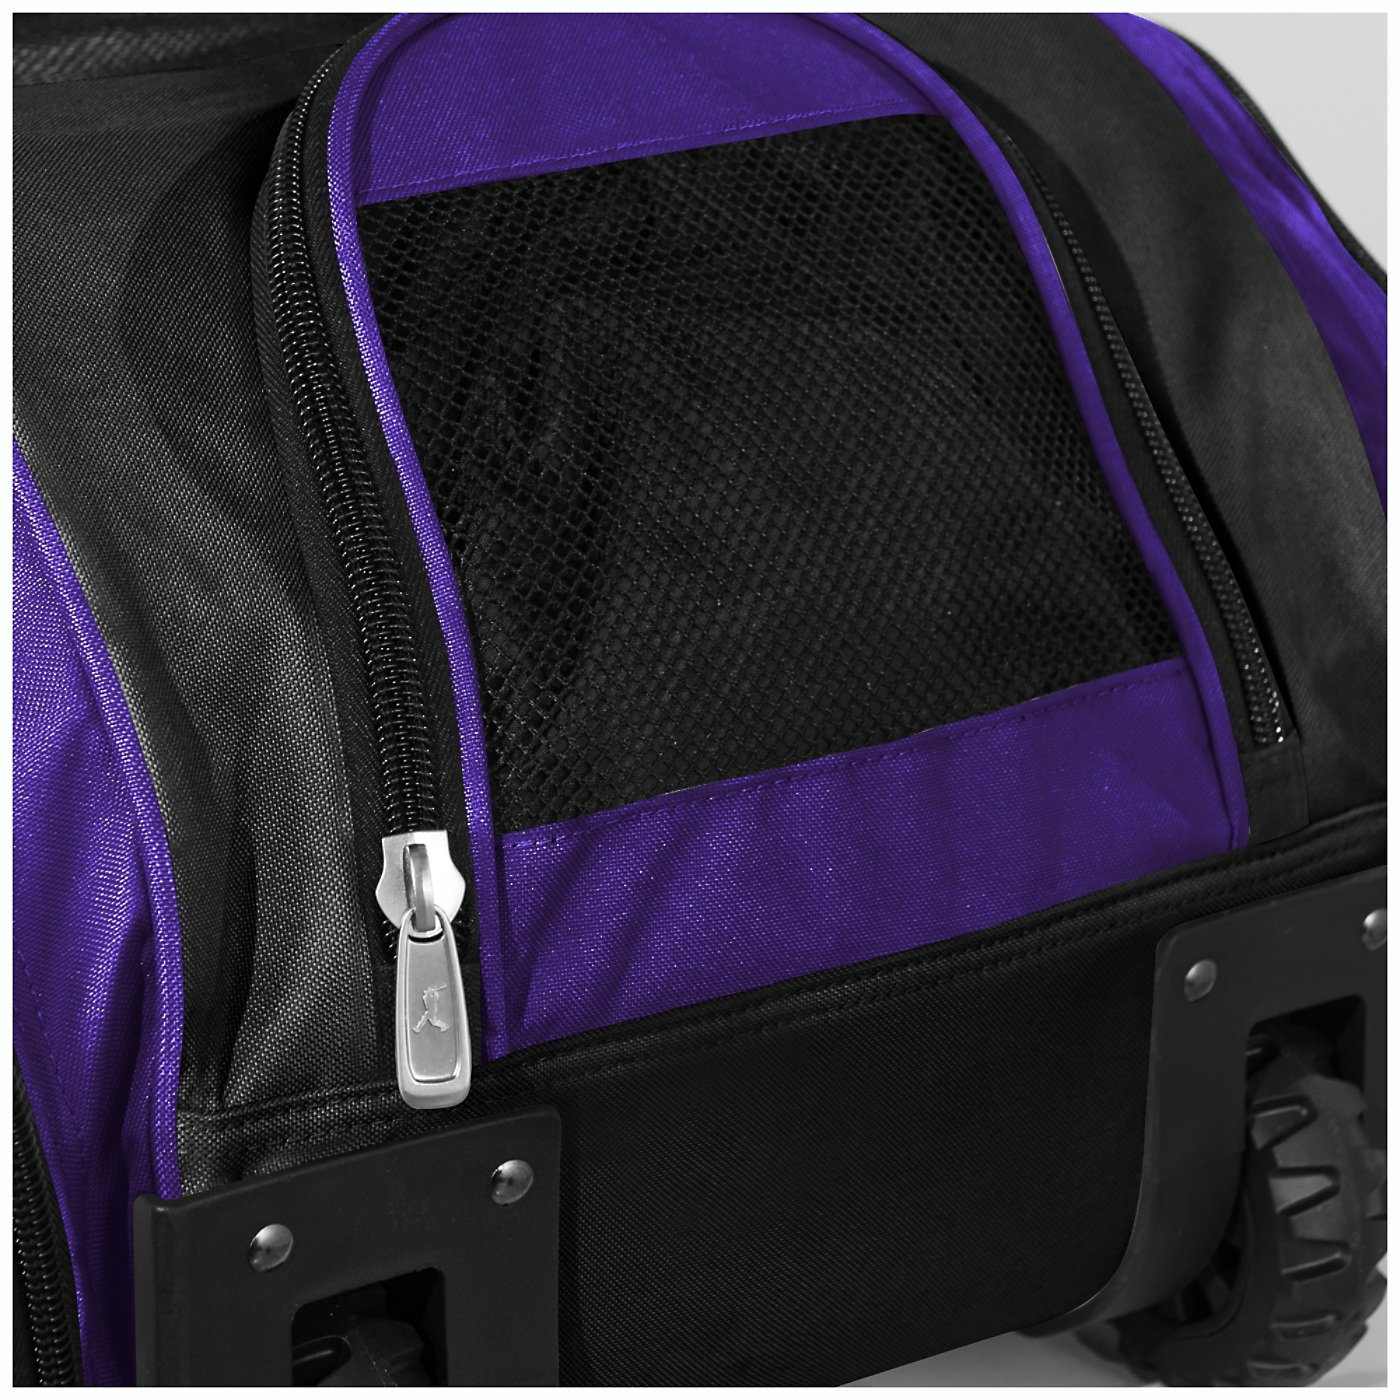 Boombah Beast Baseball/Softball Bat Bag - 40'' x 14'' x 13'' - Black/Purple - Holds 8 Bats, Glove & Shoe Compartments by Boombah (Image #4)